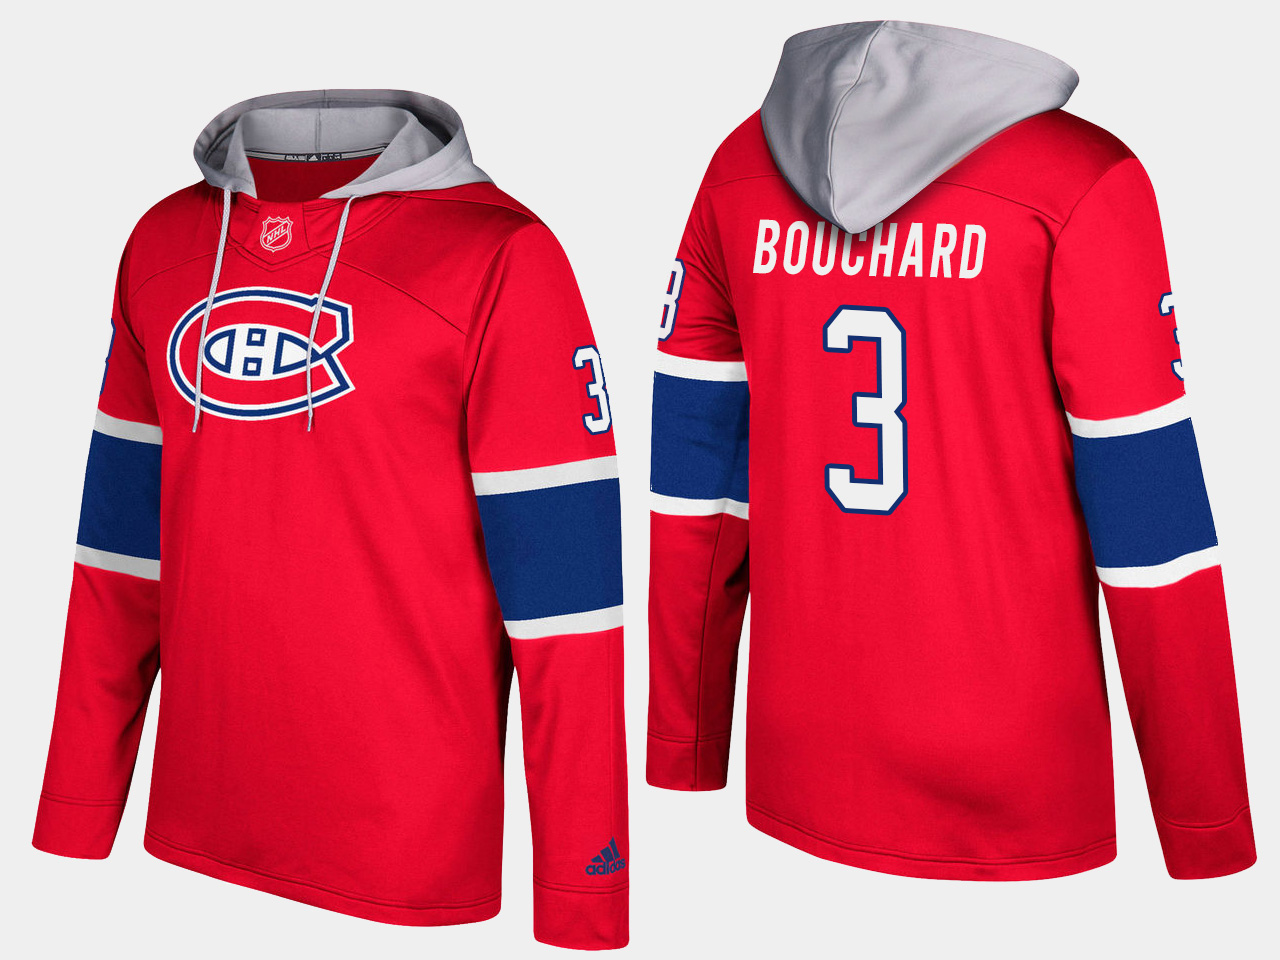 Canadiens #3 Emile Boucharde Red Name And Number Hoodie